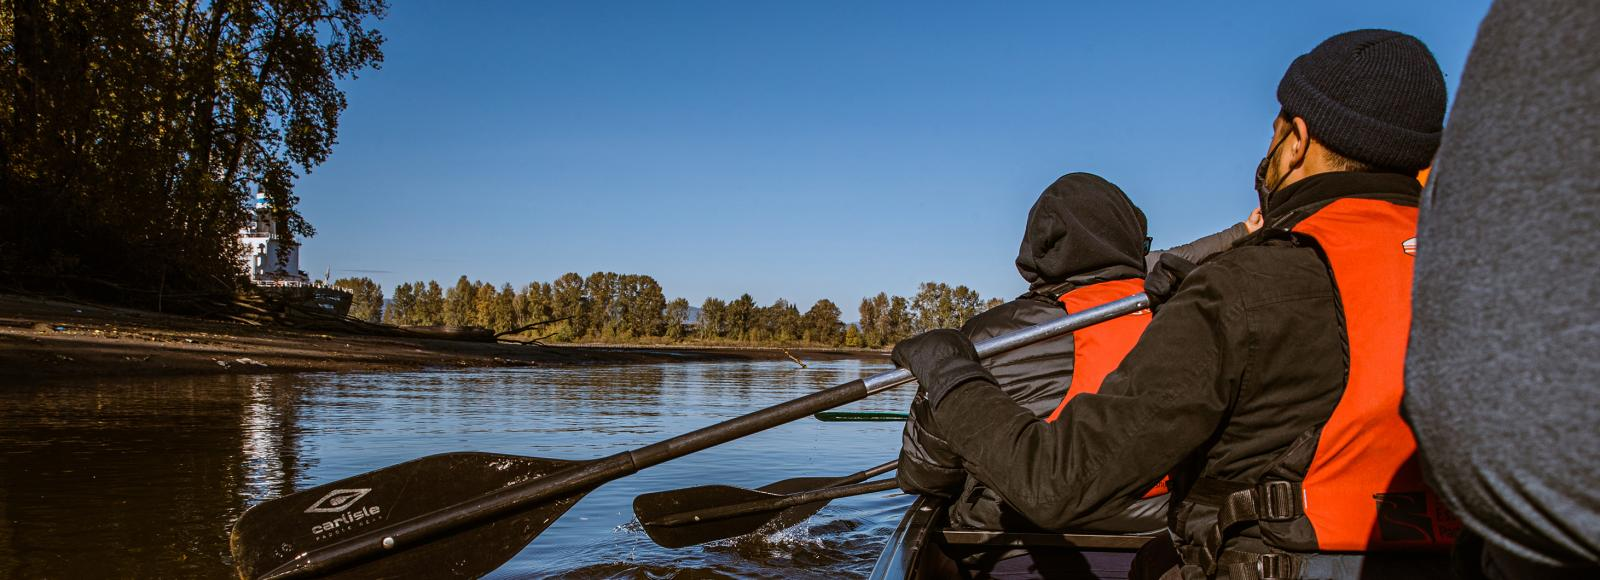 The view of someone's back as they lift an oar over the water. Another person can be seen in front of them, holding an oar in the same position.